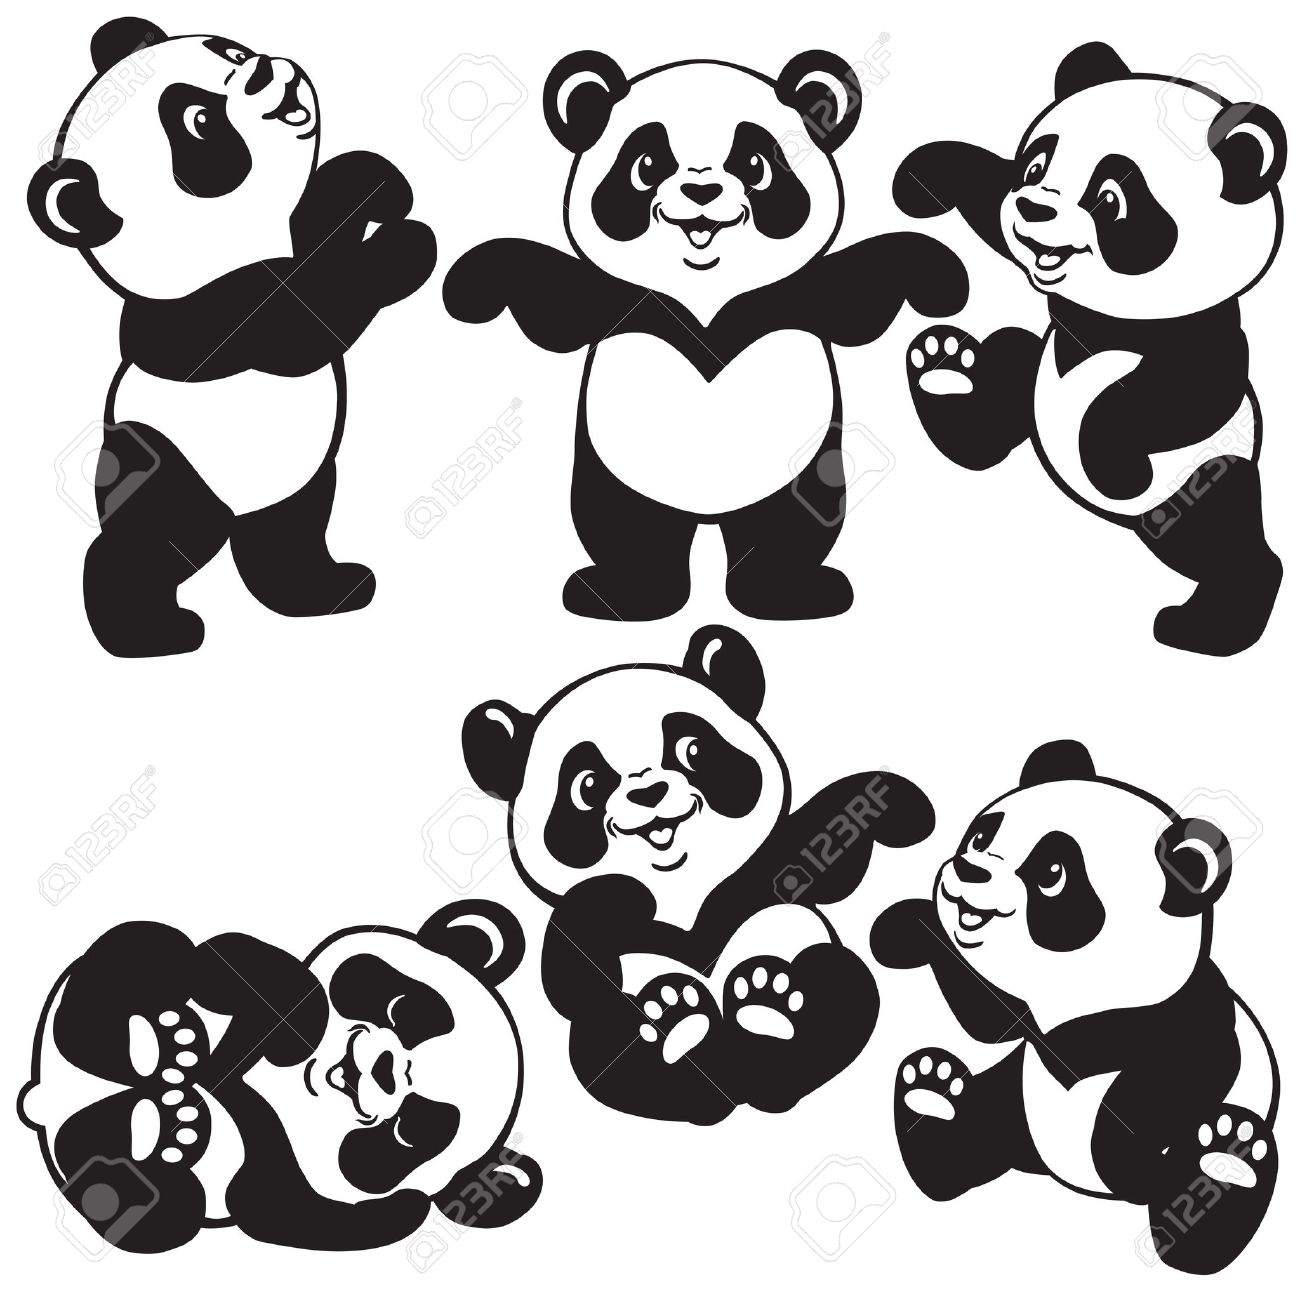 Set With Cartoon Panda Bear Black And White Images For Little Royalty Free Cliparts Vectors And Stock Illustration Image 36063395